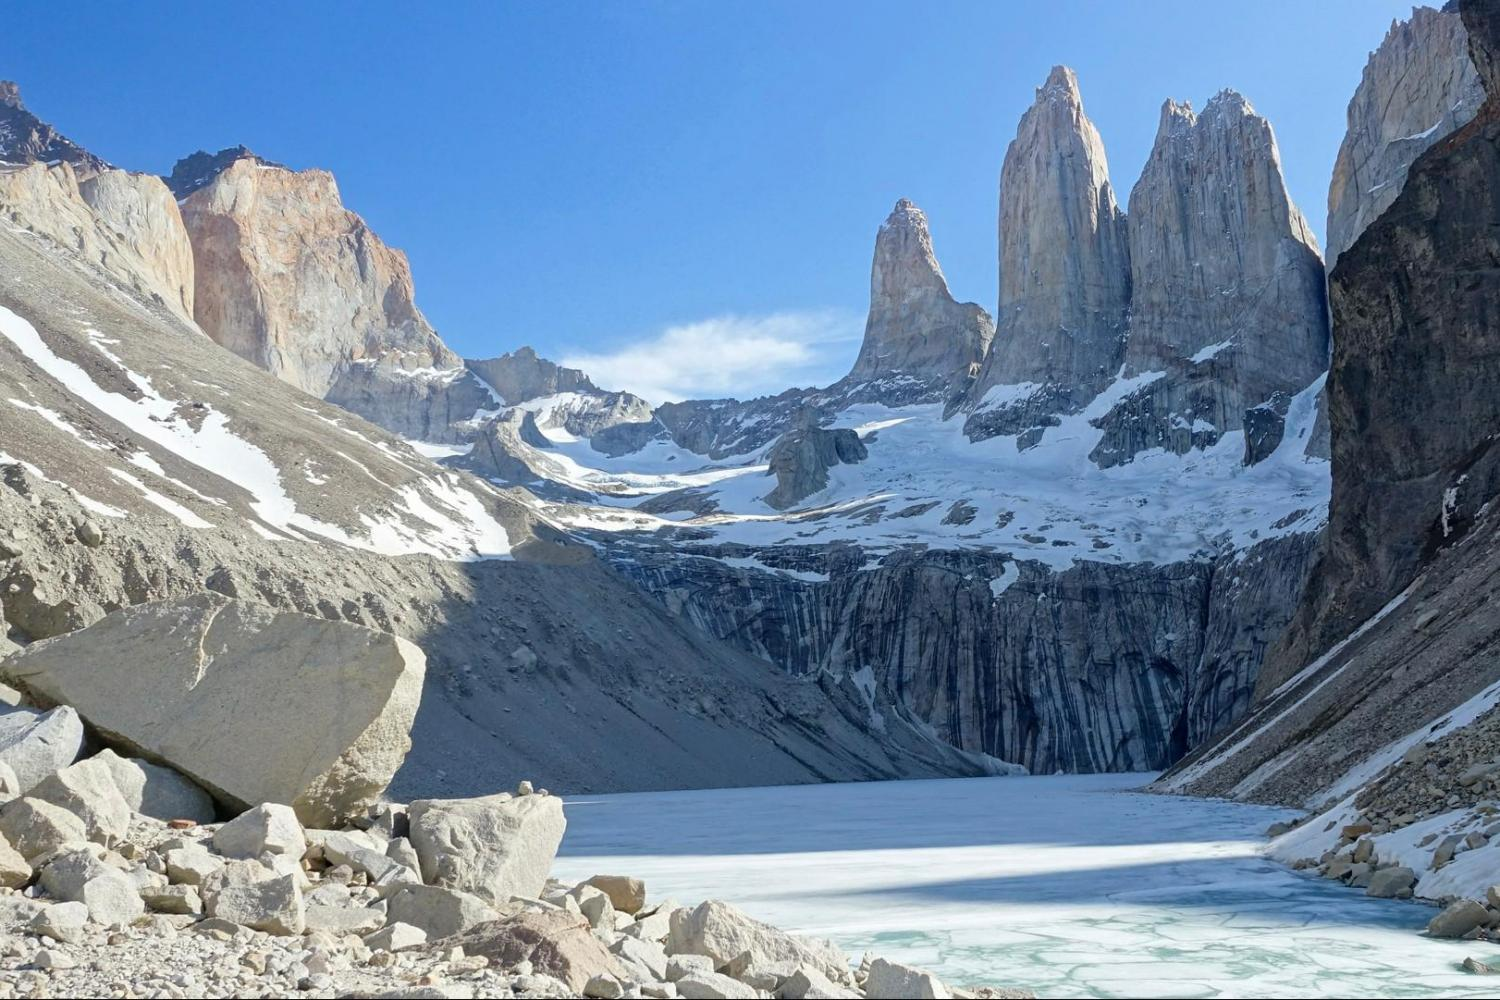 Doing 'The W' in Torres del Paine